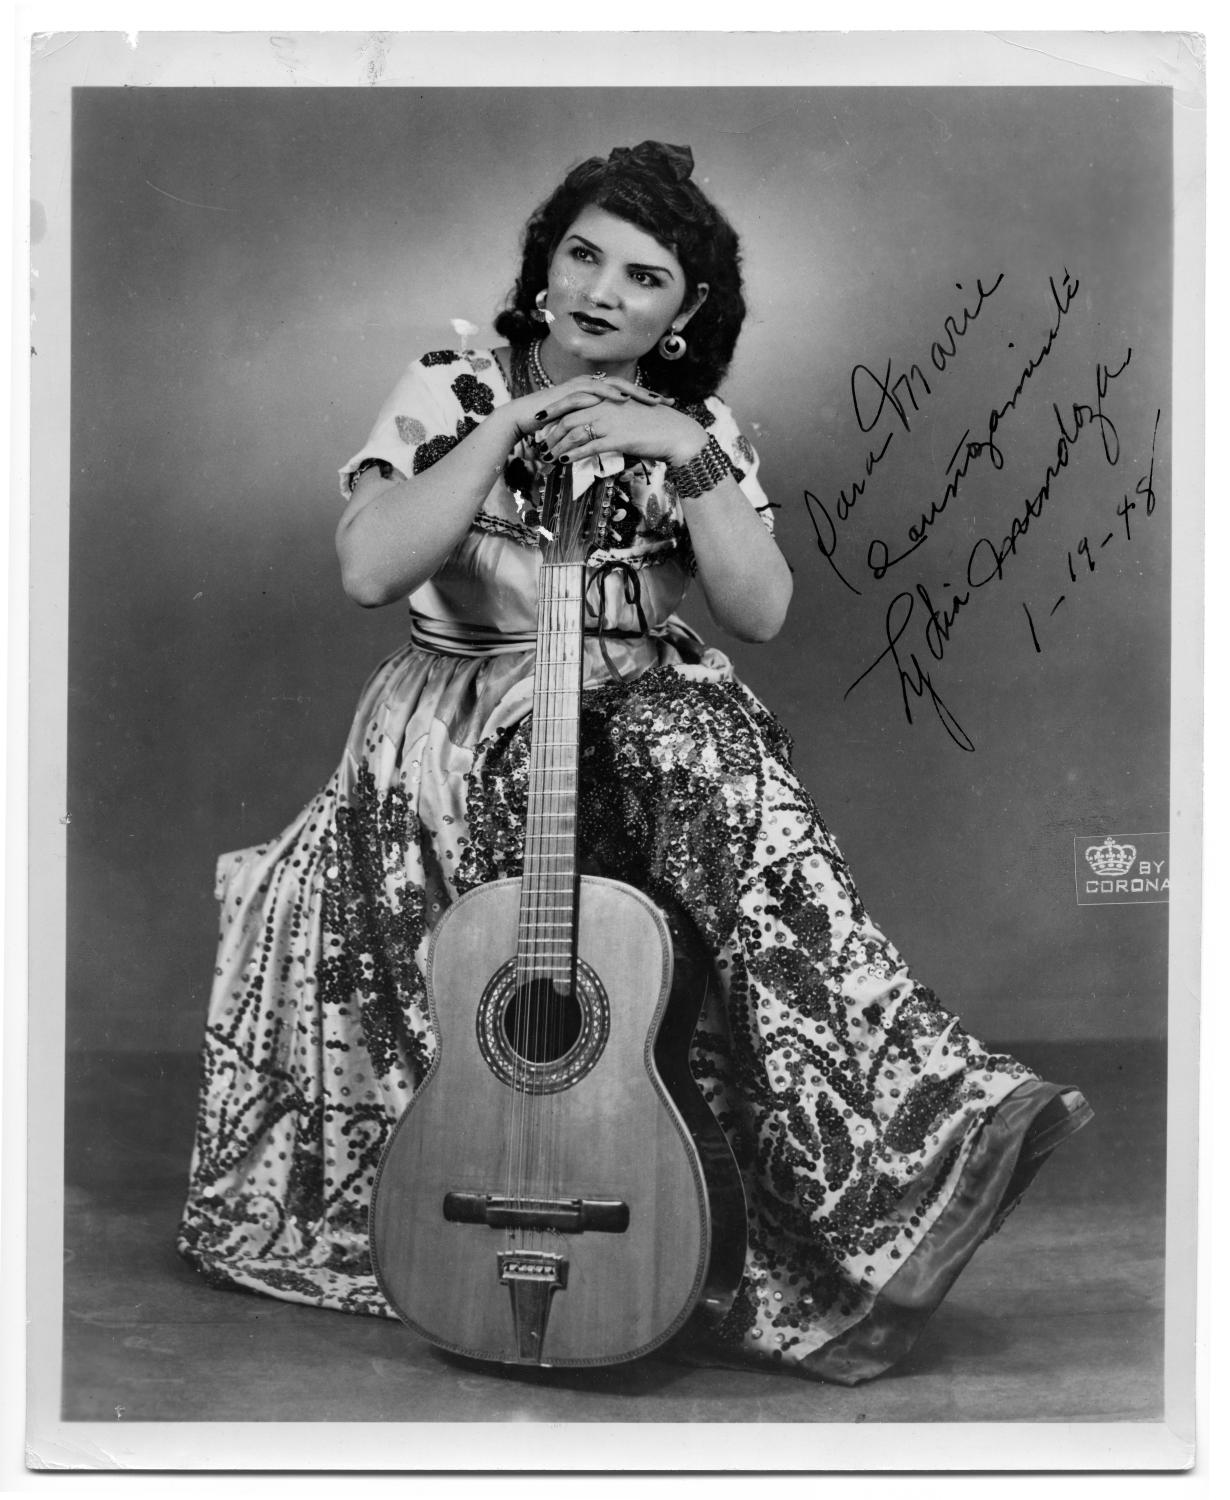 Forum on this topic: Anne Schedeen, celia-rodriguez-b-1934/